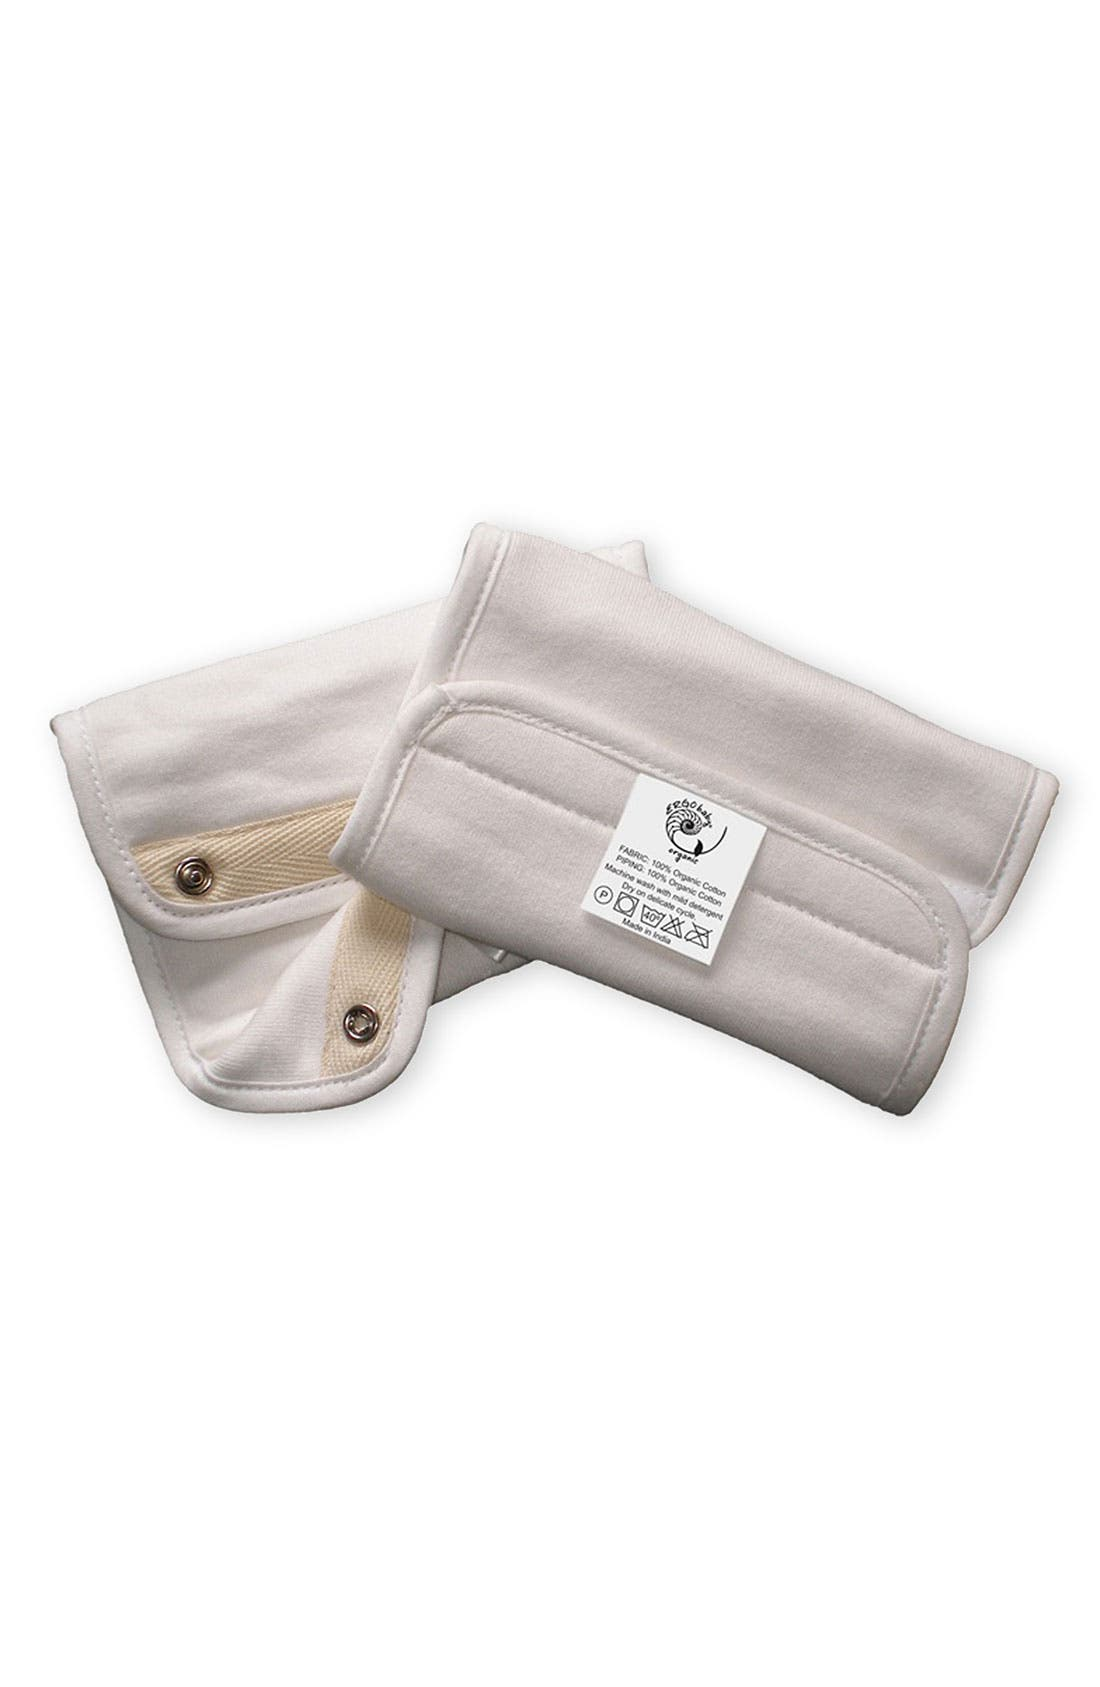 ERGObaby Teething Pads (Set of 2)